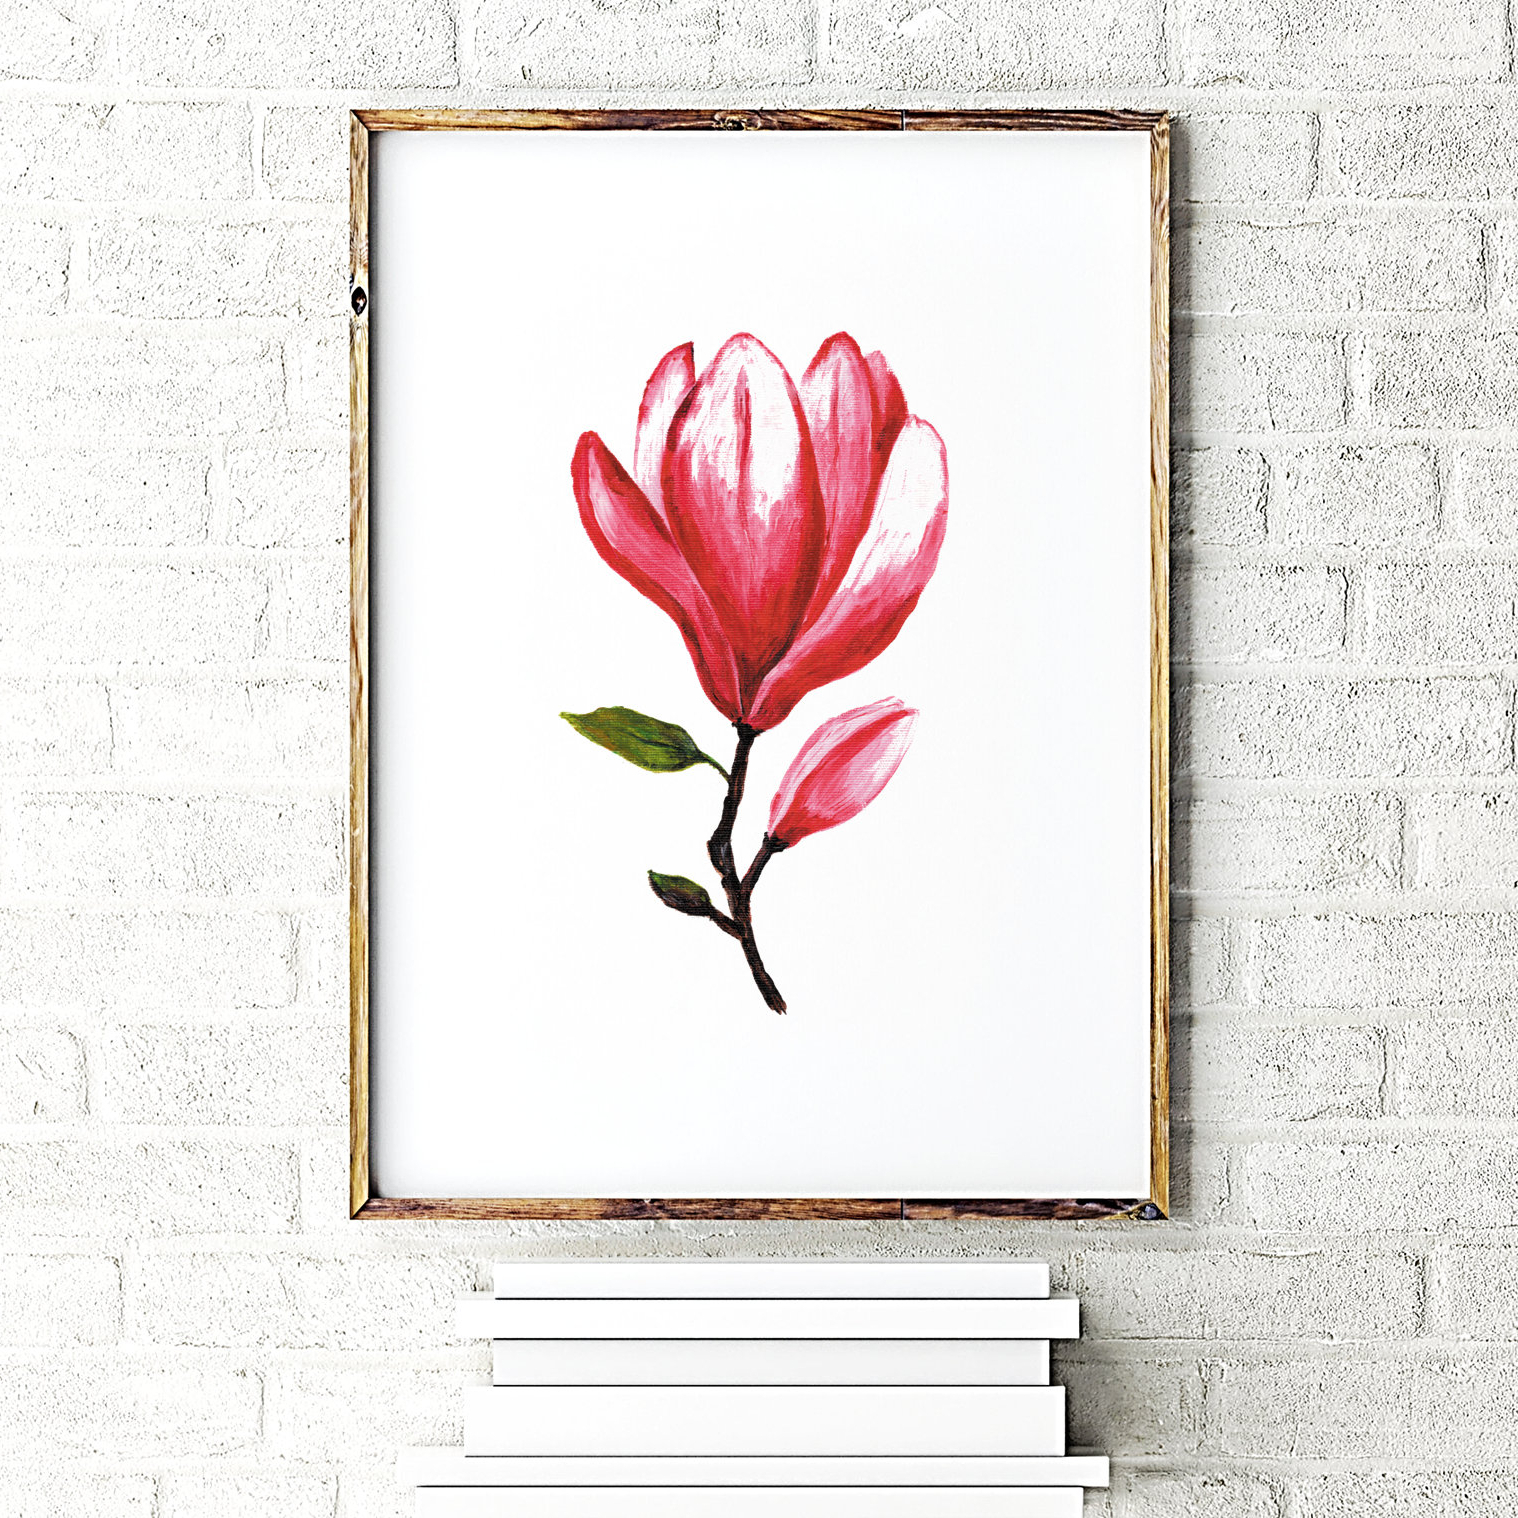 3 Piece Magnolia Brown Panel Wall Decor Sets Intended For Most Current Magnolia Flower Print Floral Wall Decor Magnolia Painting (Gallery 20 of 20)